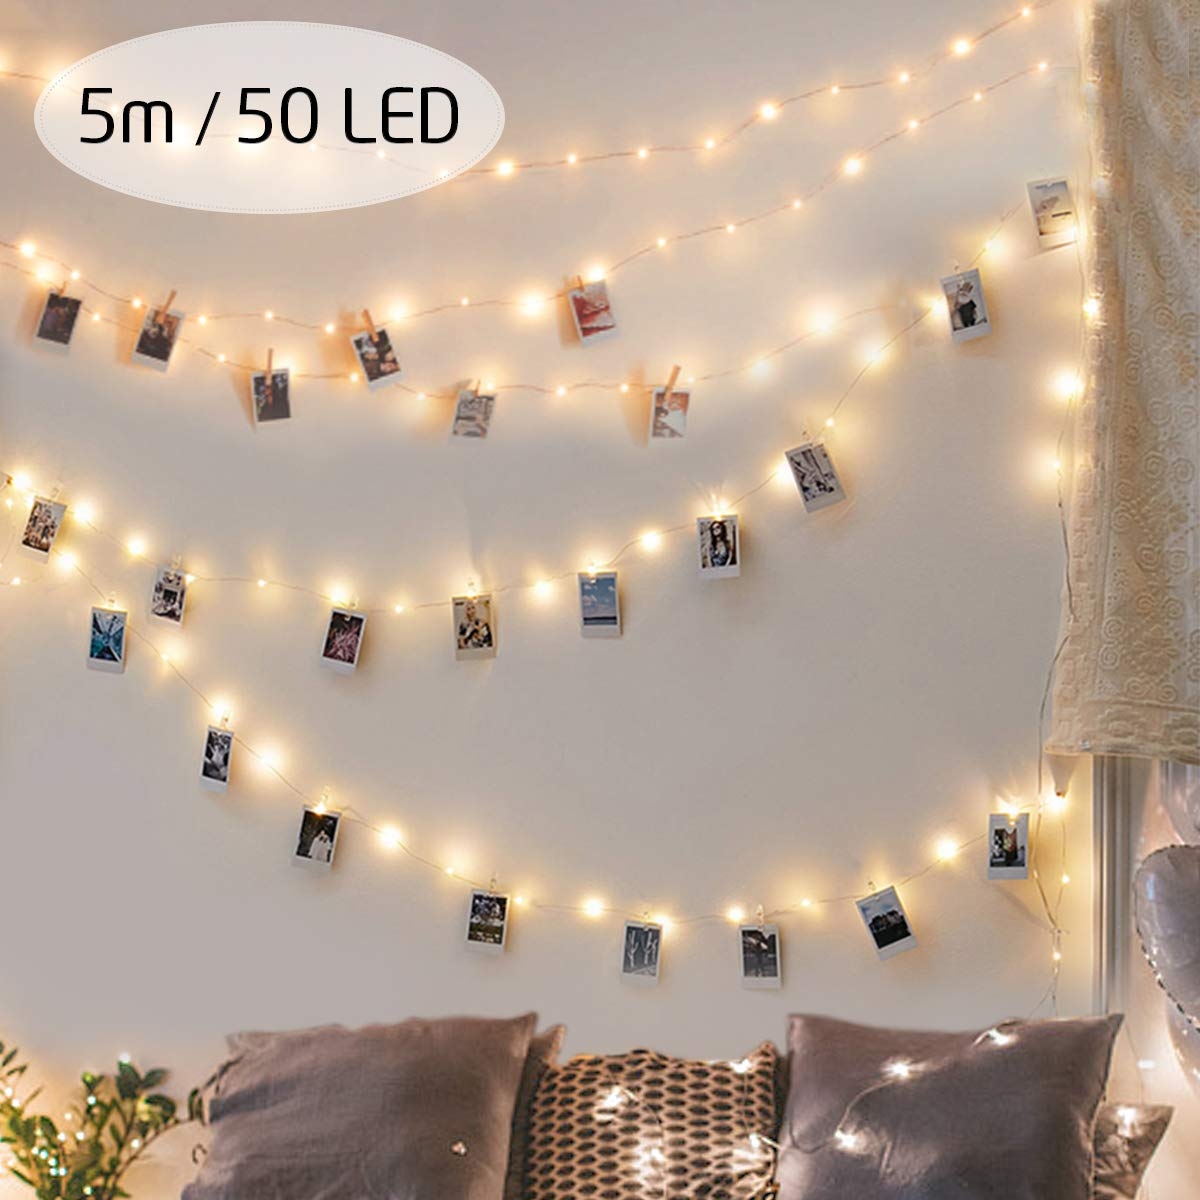 king do way LED Fotoclips Lichterkette für Zimmer Deko, 5M LED Foto Clip Lichterkette